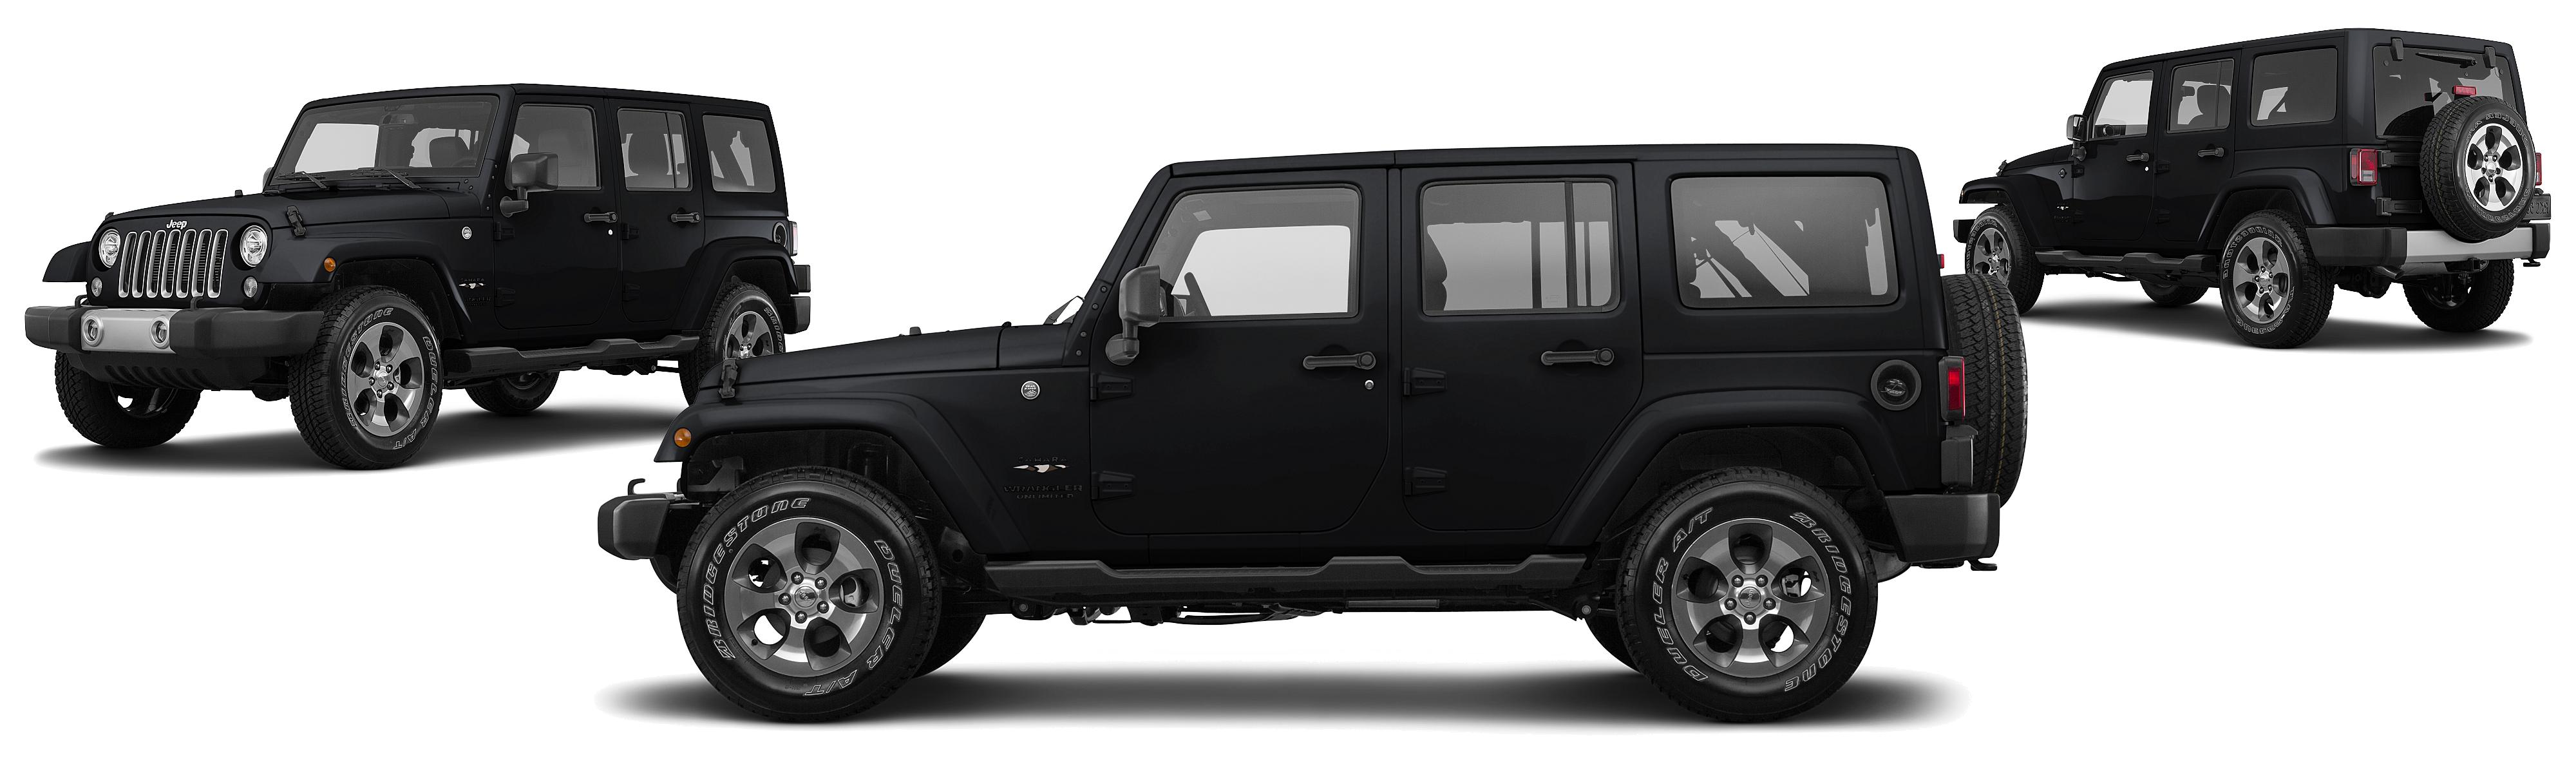 with pillar recon jeep ny island long for near description wrangler door sale image htm rubicon page new unlimited